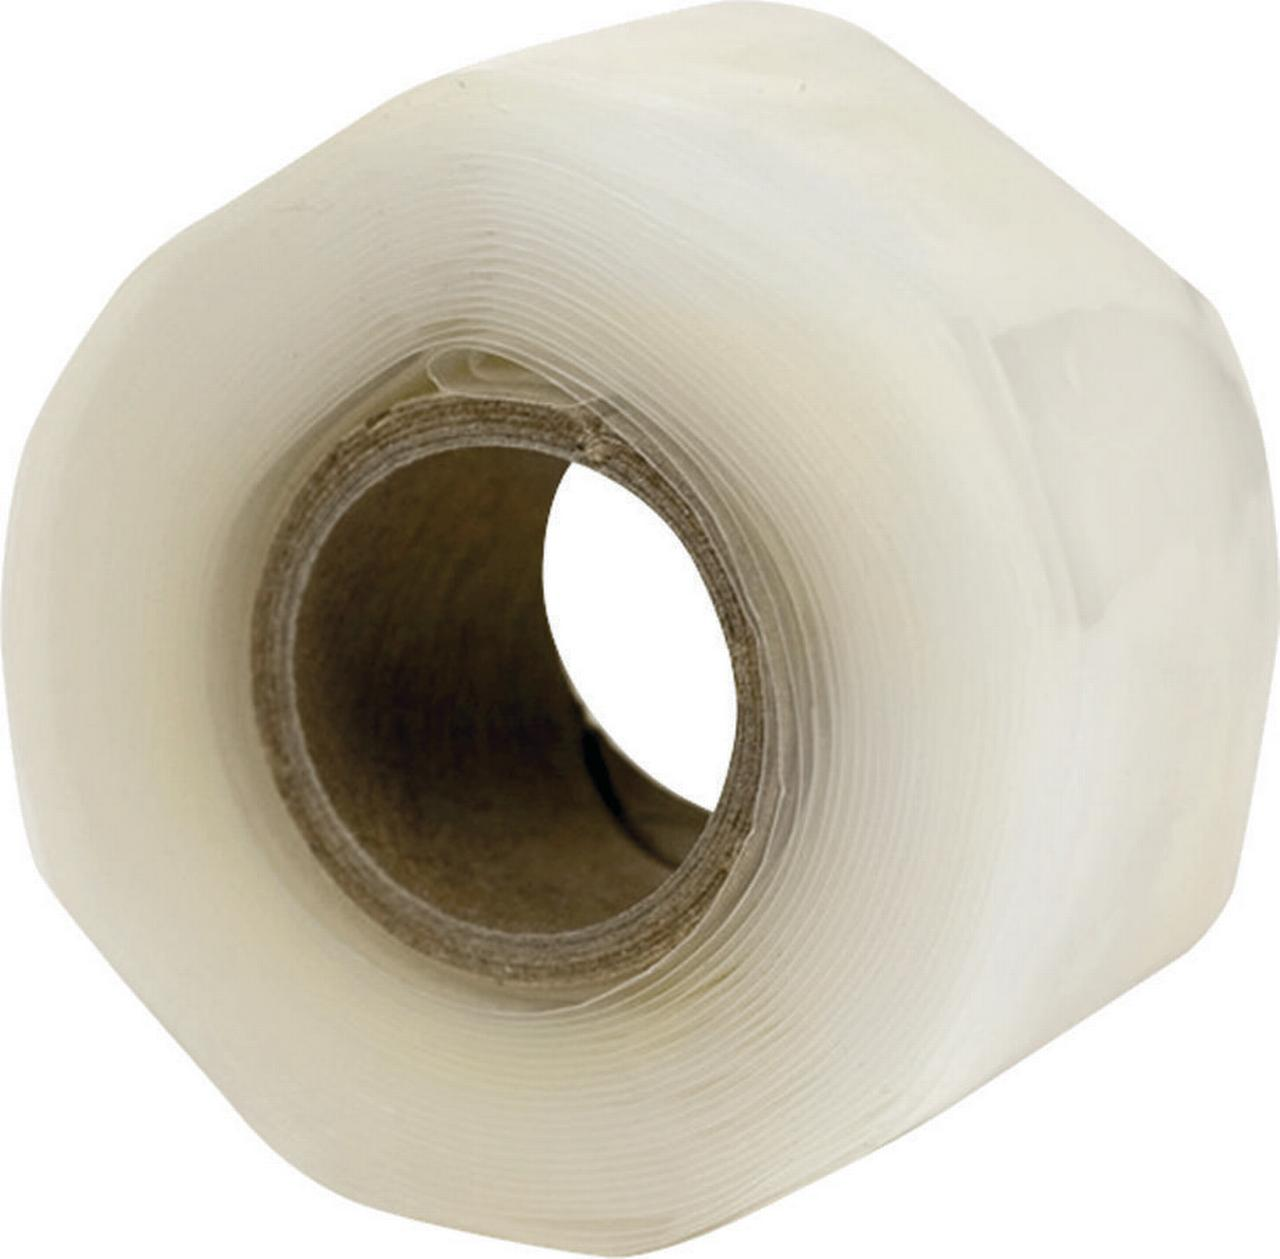 "Harbor USC04 Rescue Tape 1""x12''x20mm Silicone Clear"